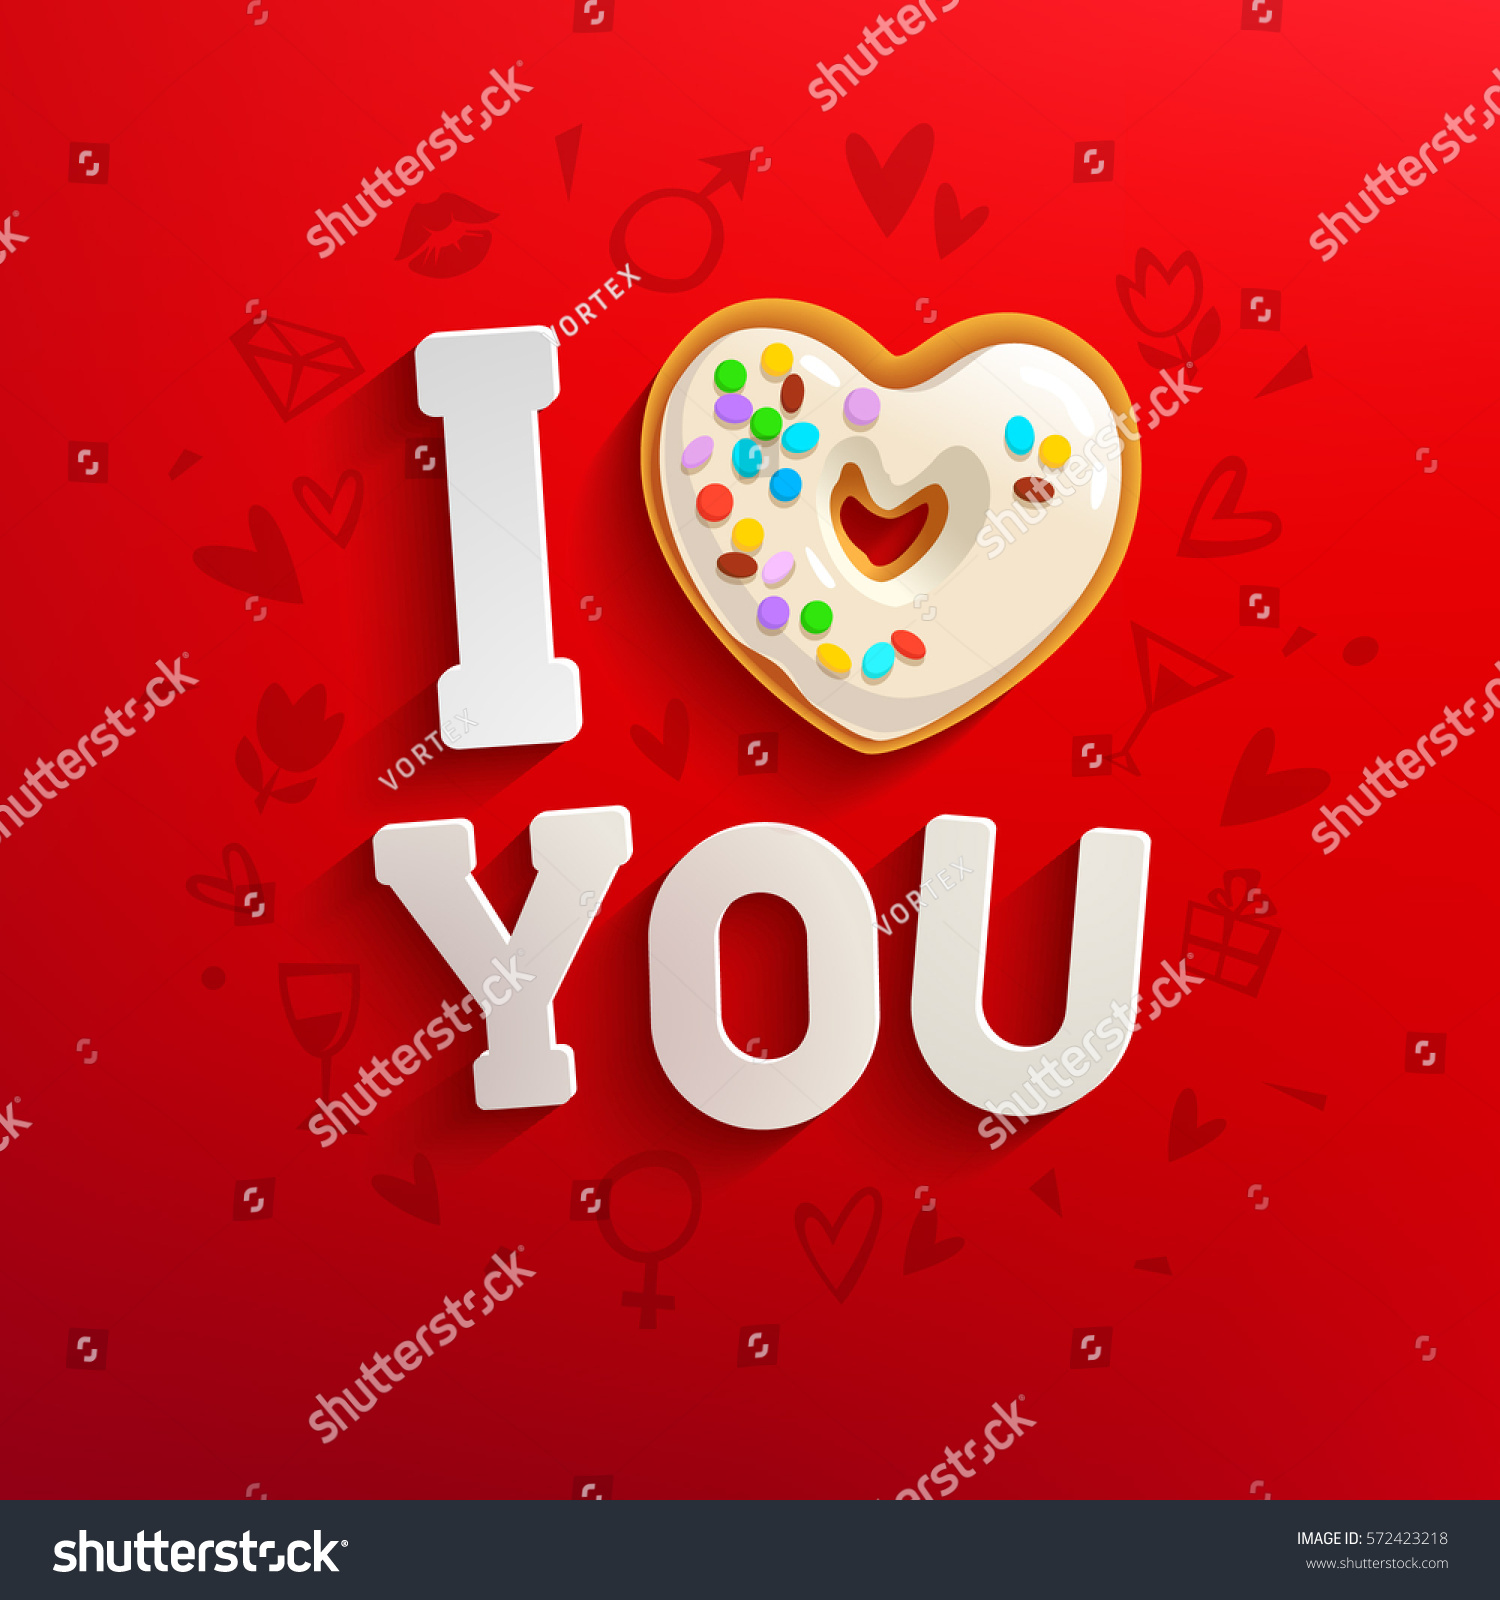 concept of creative valentine card love you inscription with white heart shaped donut on red romantic